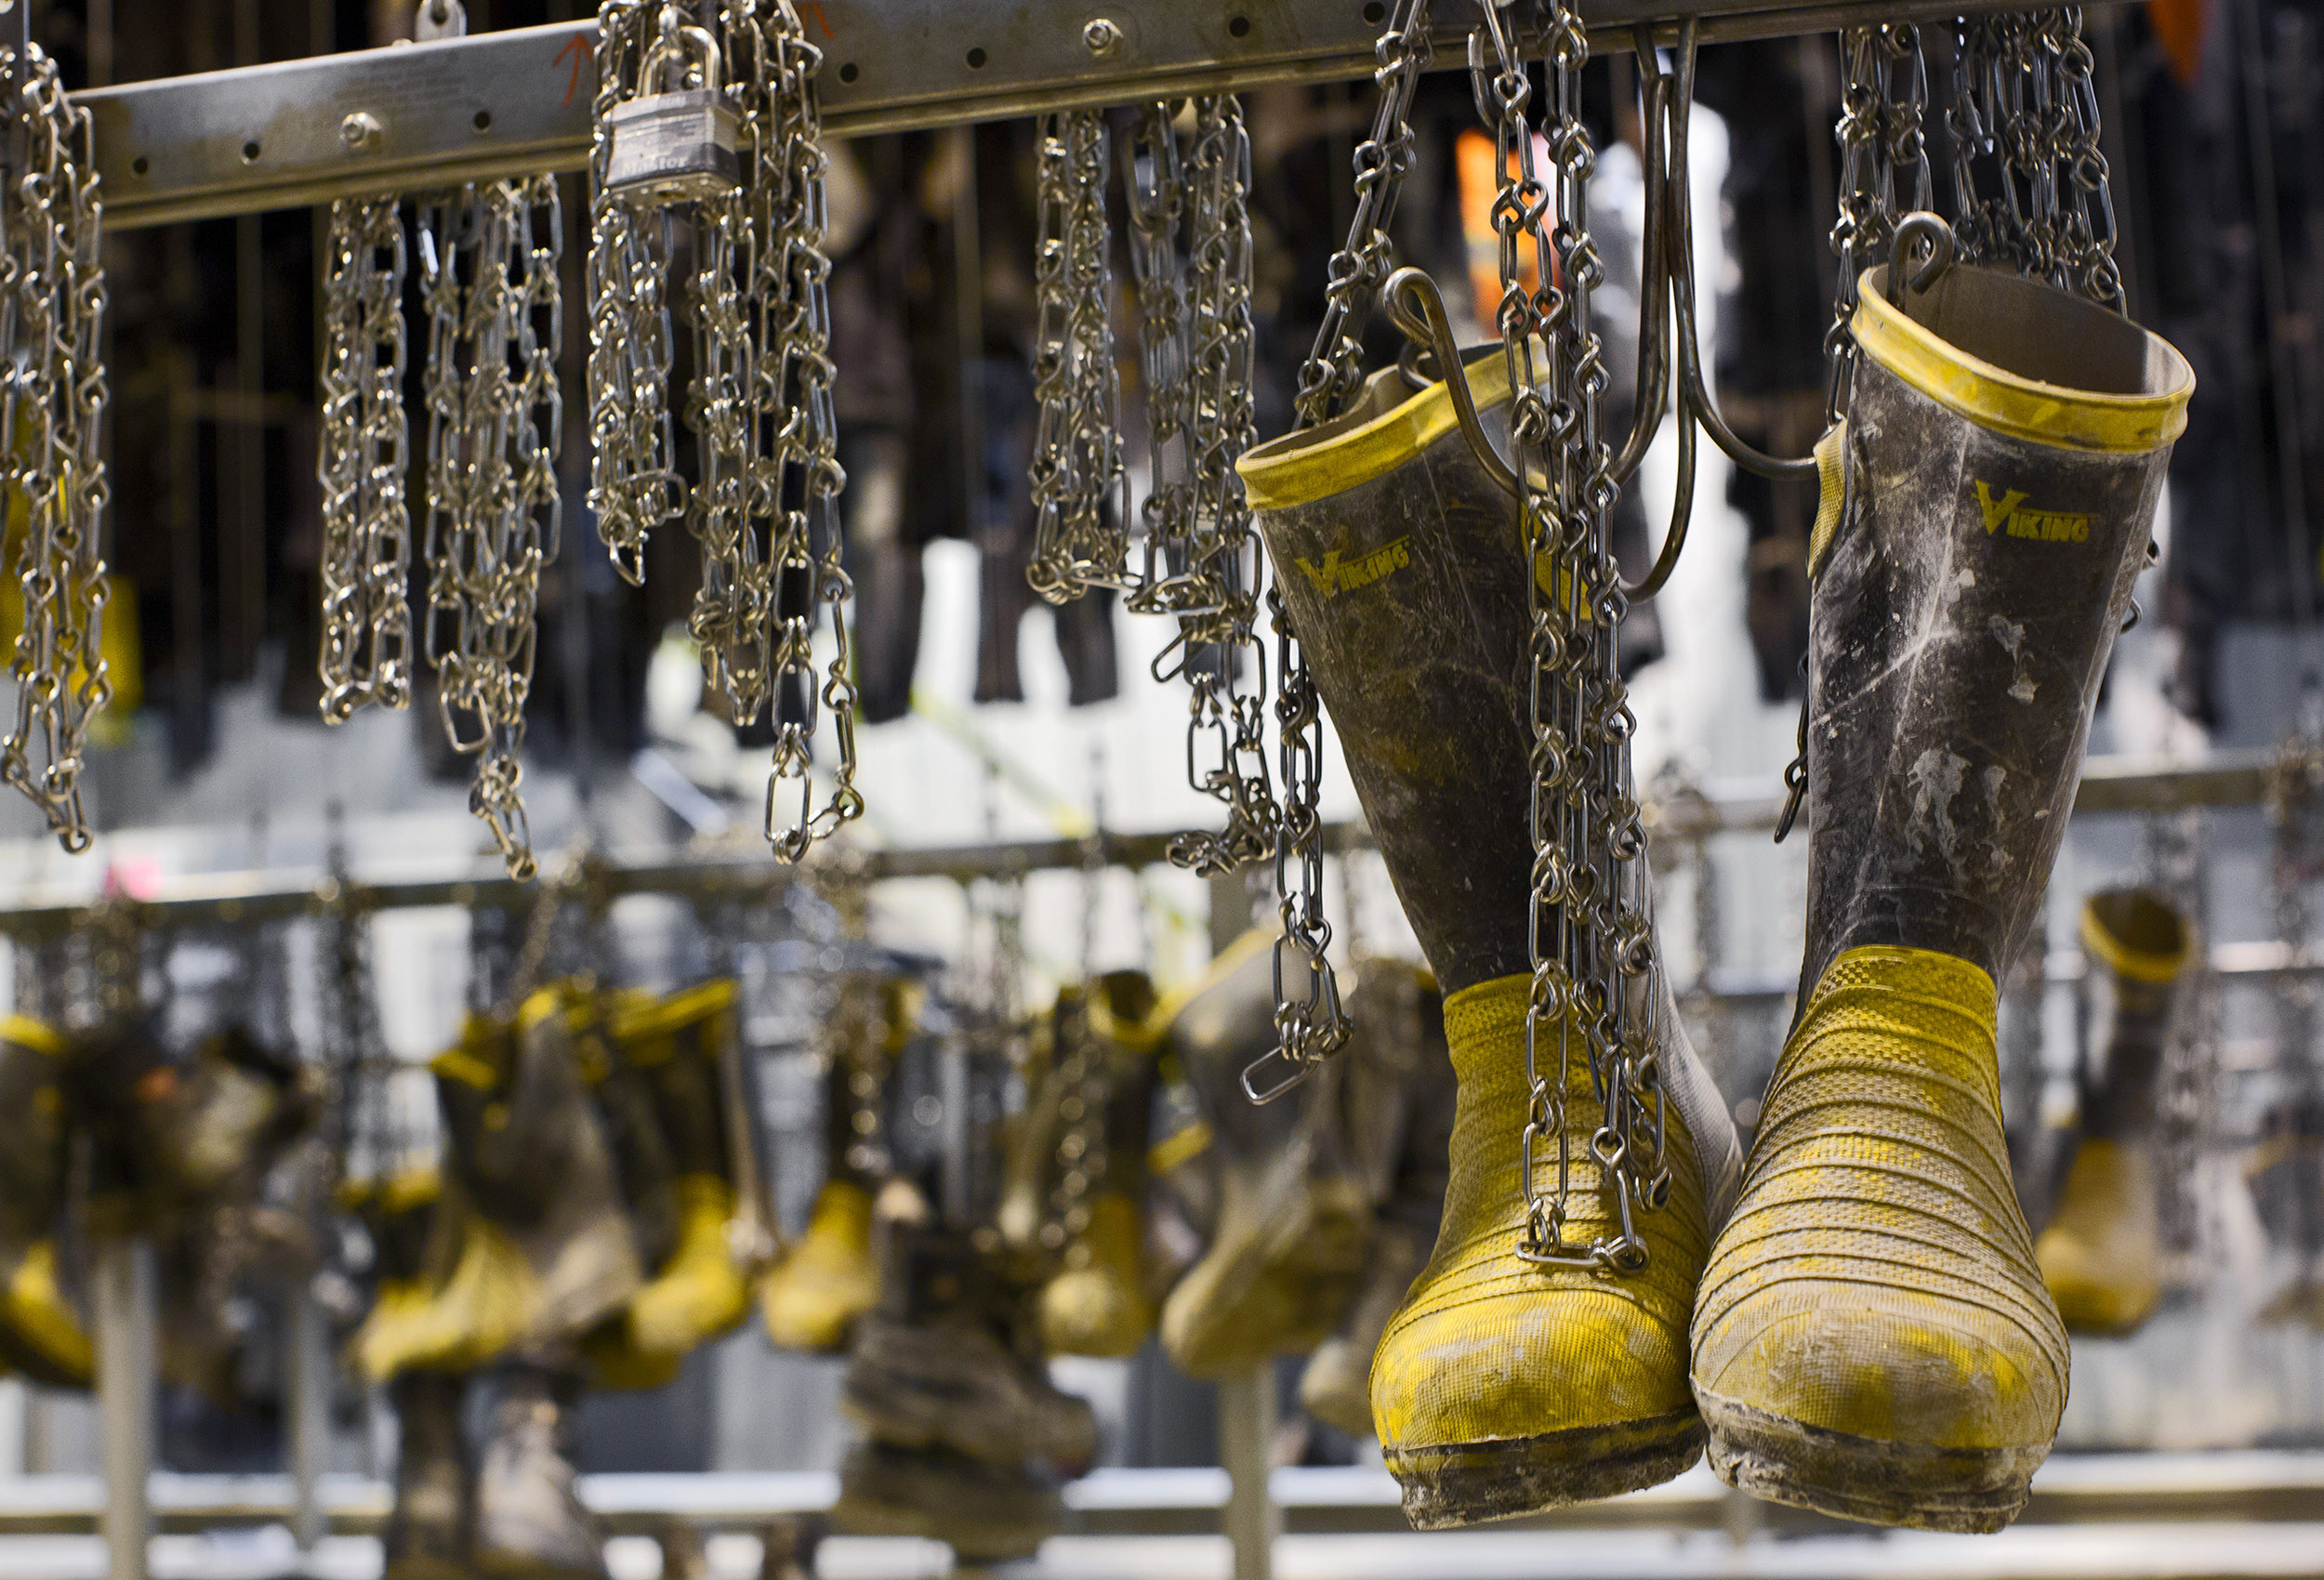 mining boots hang at an iamgold plant in Rouyn quebec by the best canadian mining photographer john hryniuk